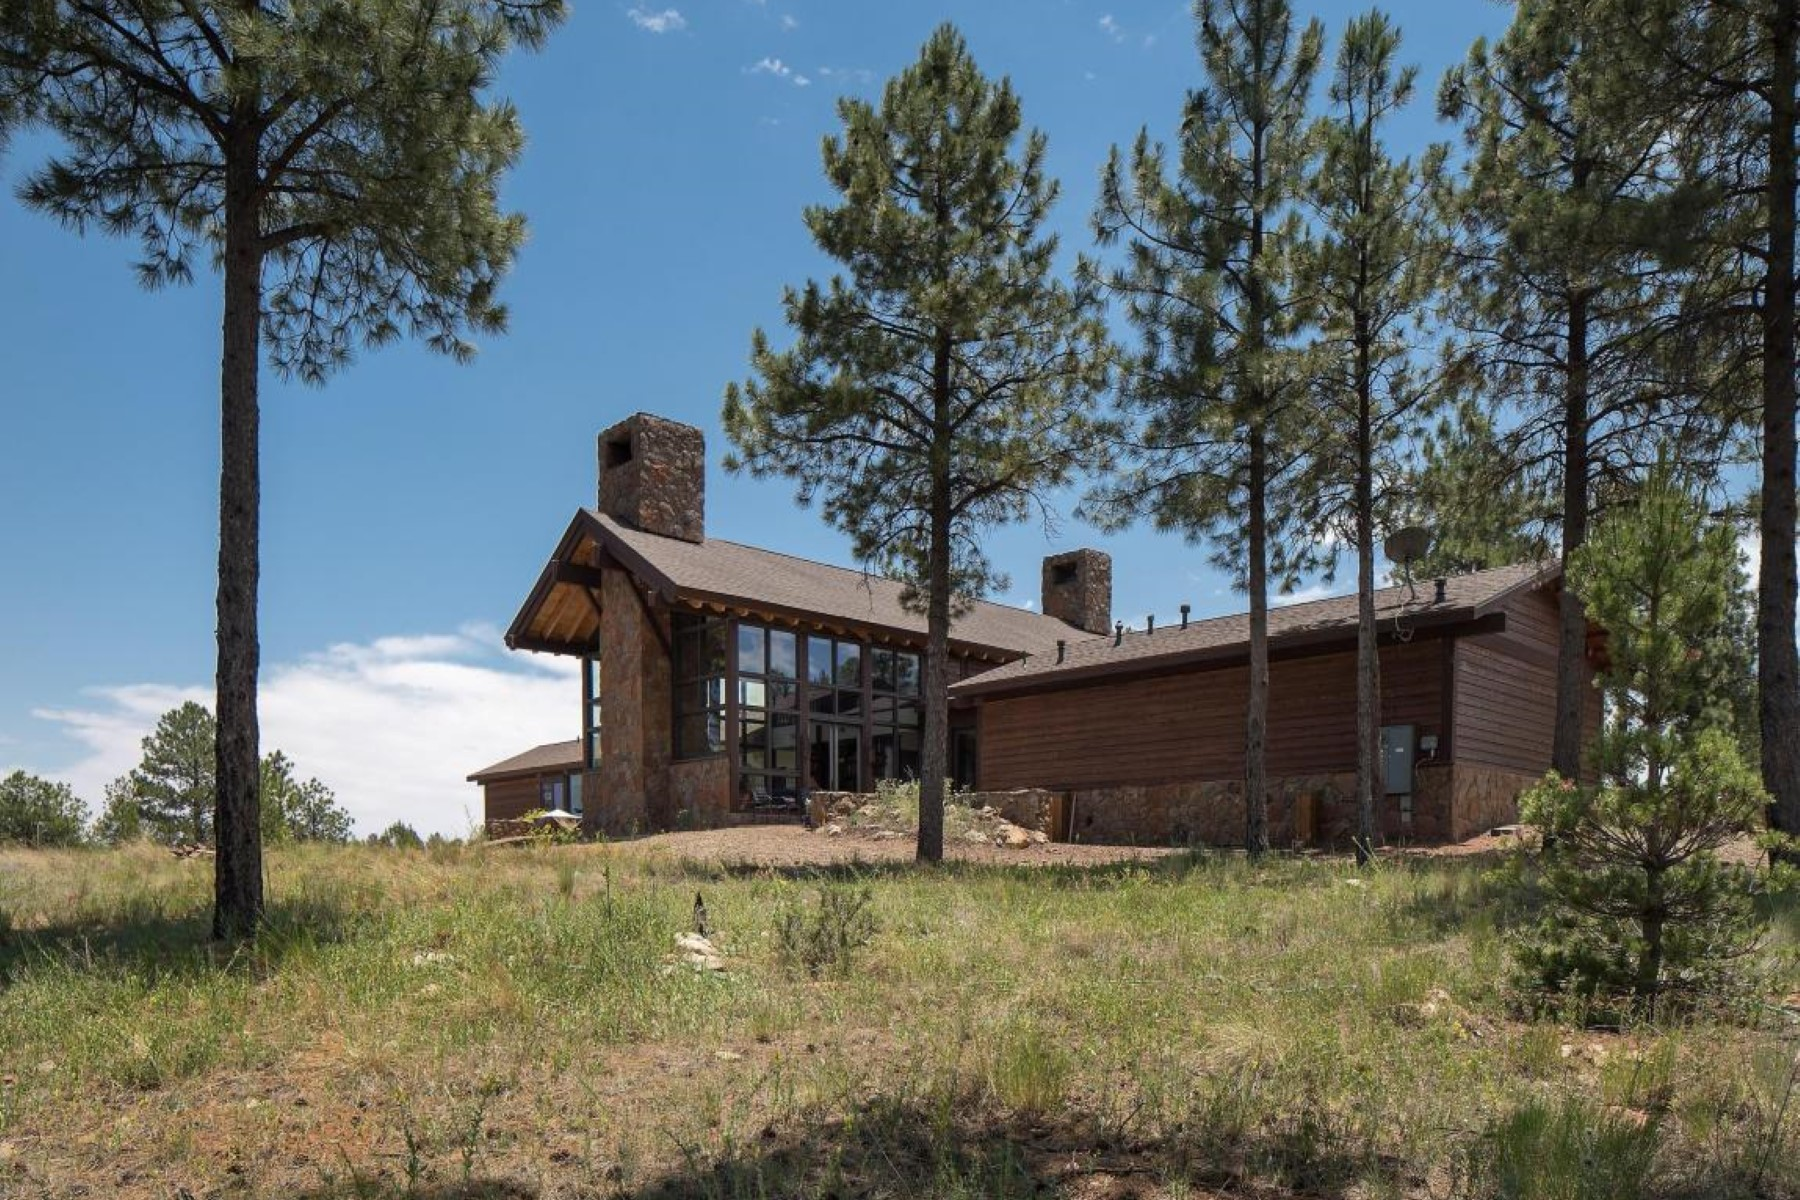 Single Family Home for Sale at Spectacularly elegant mountain retreat 424 S Fourth St Flagstaff, Arizona, 86004 United States